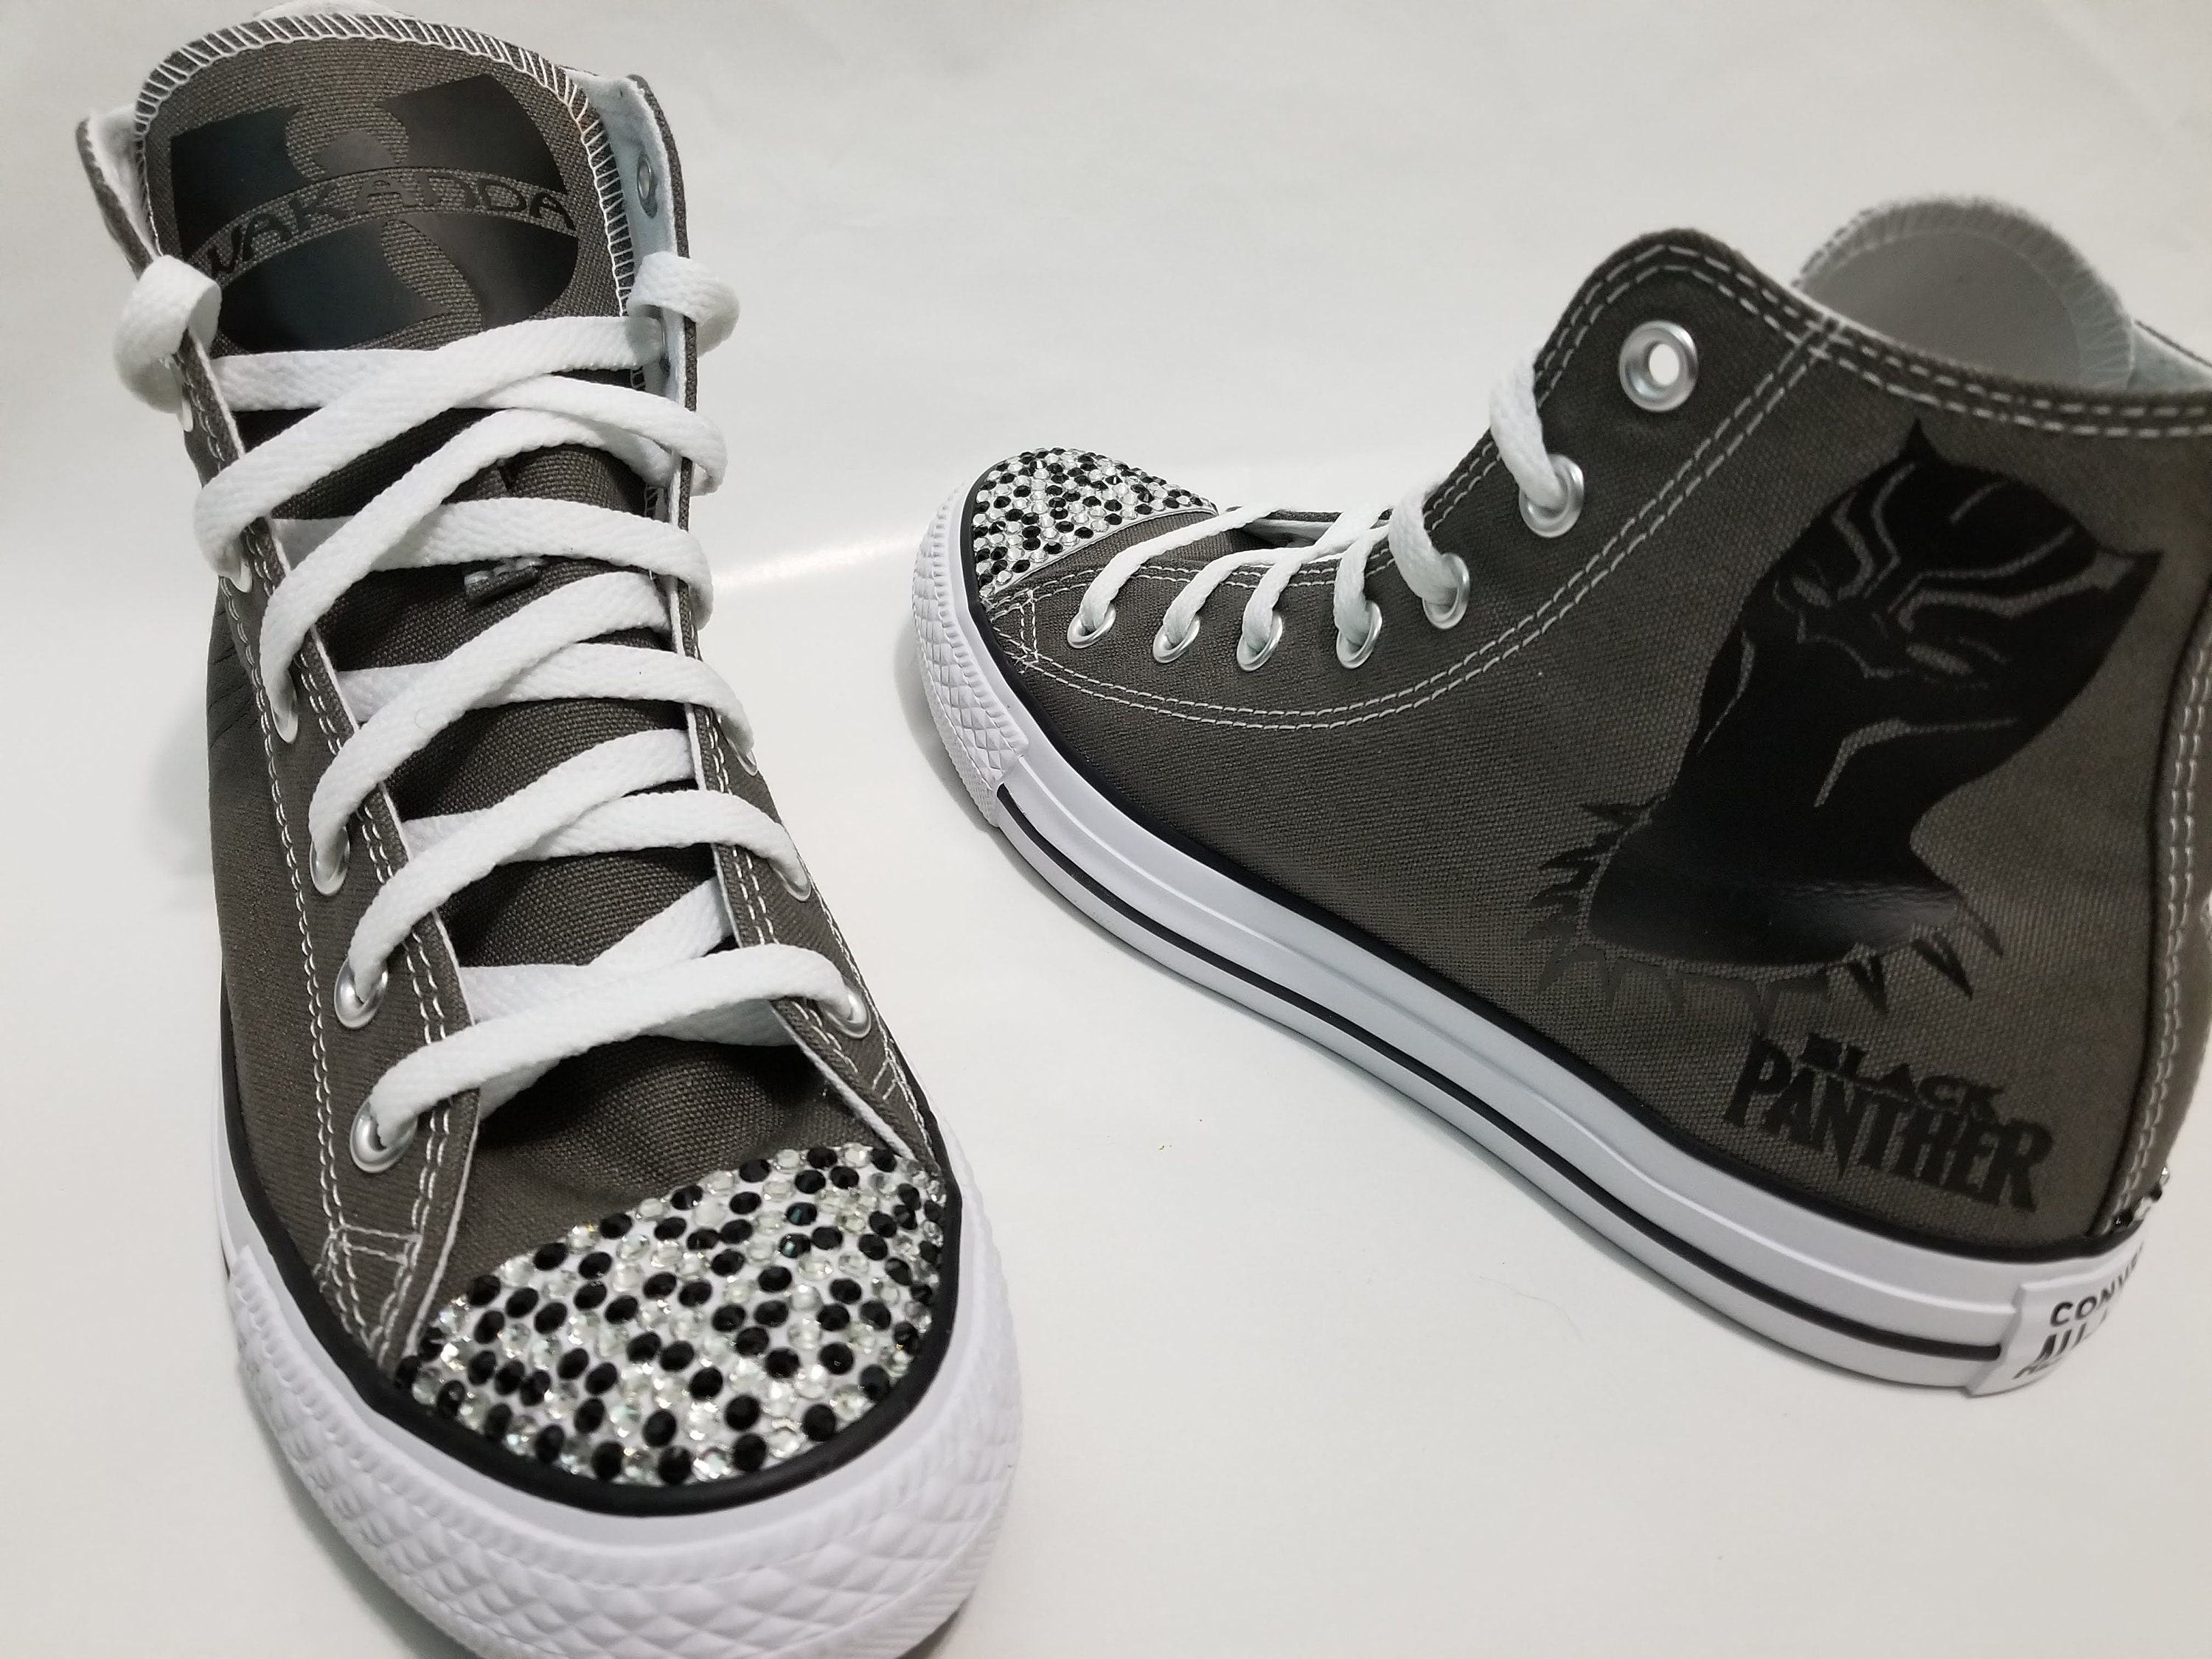 011ea6556a19 Black Panther Bling Converse Gray High Top Shoes and Black